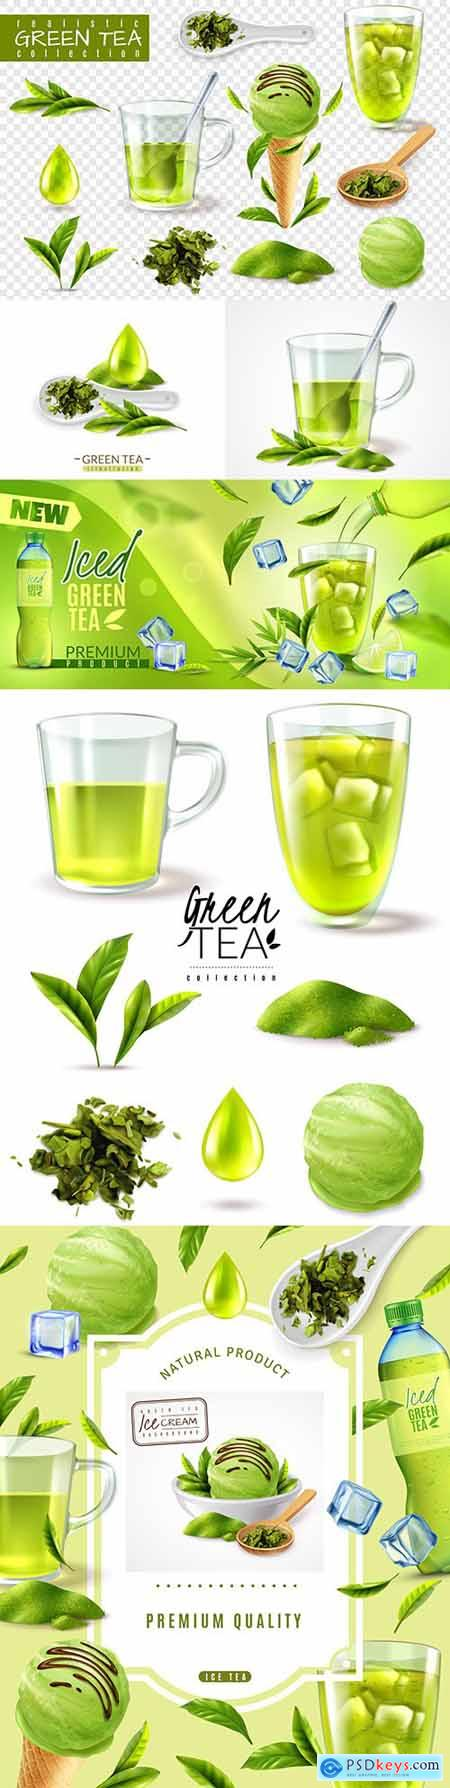 Realistic green iced tea and ice cream set illustration